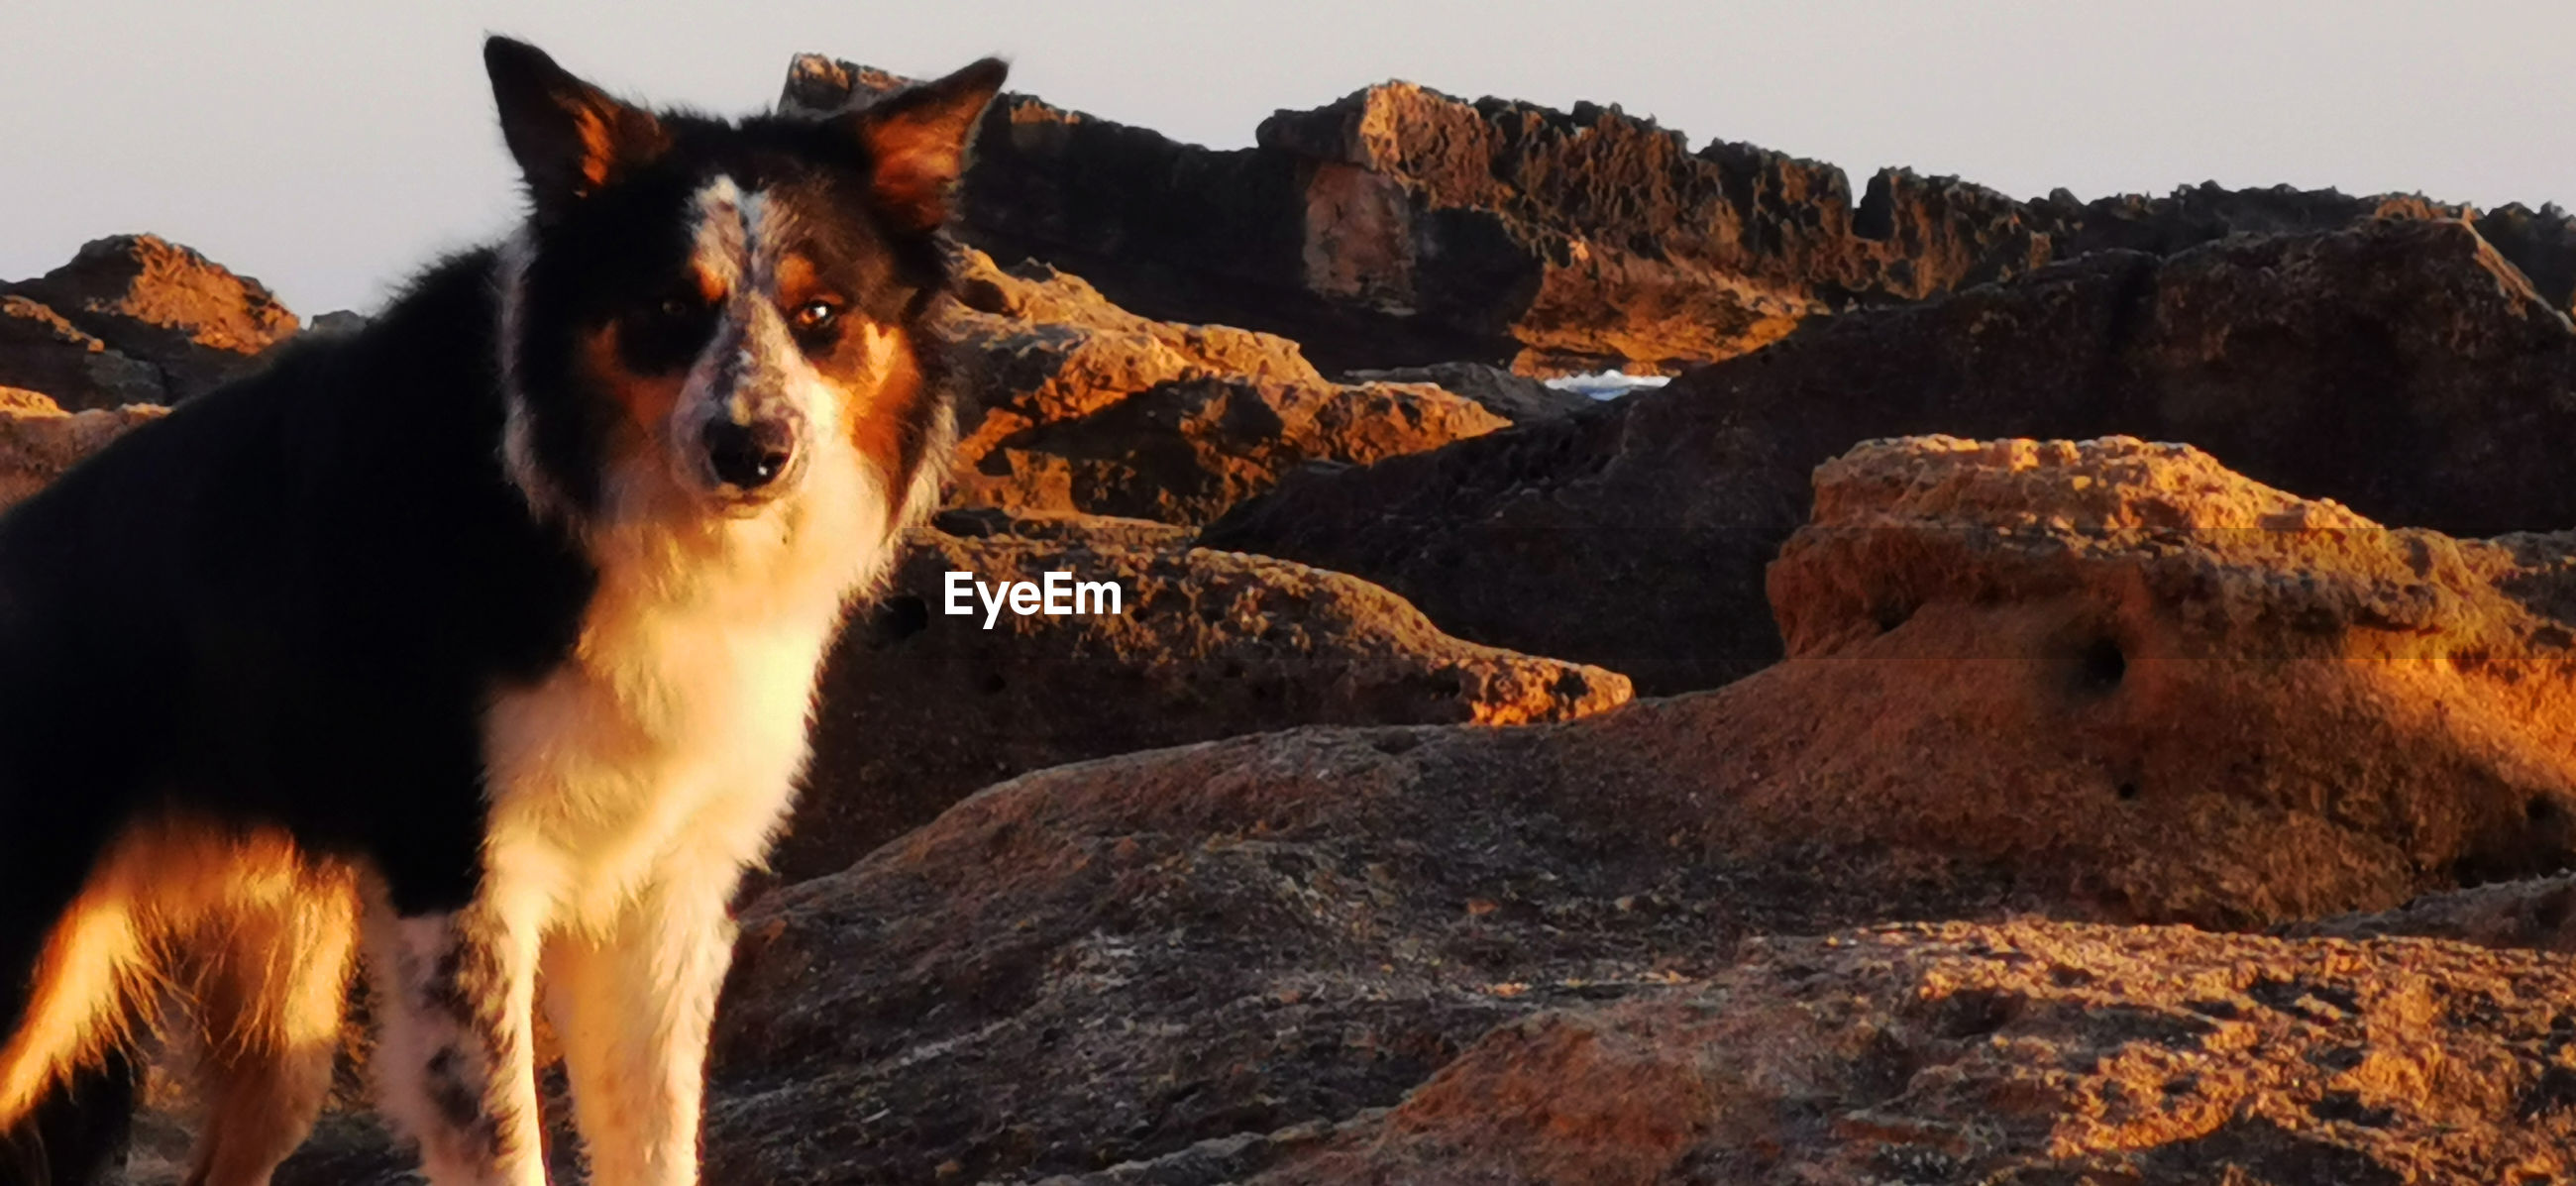 VIEW OF A DOG LOOKING AT MOUNTAIN